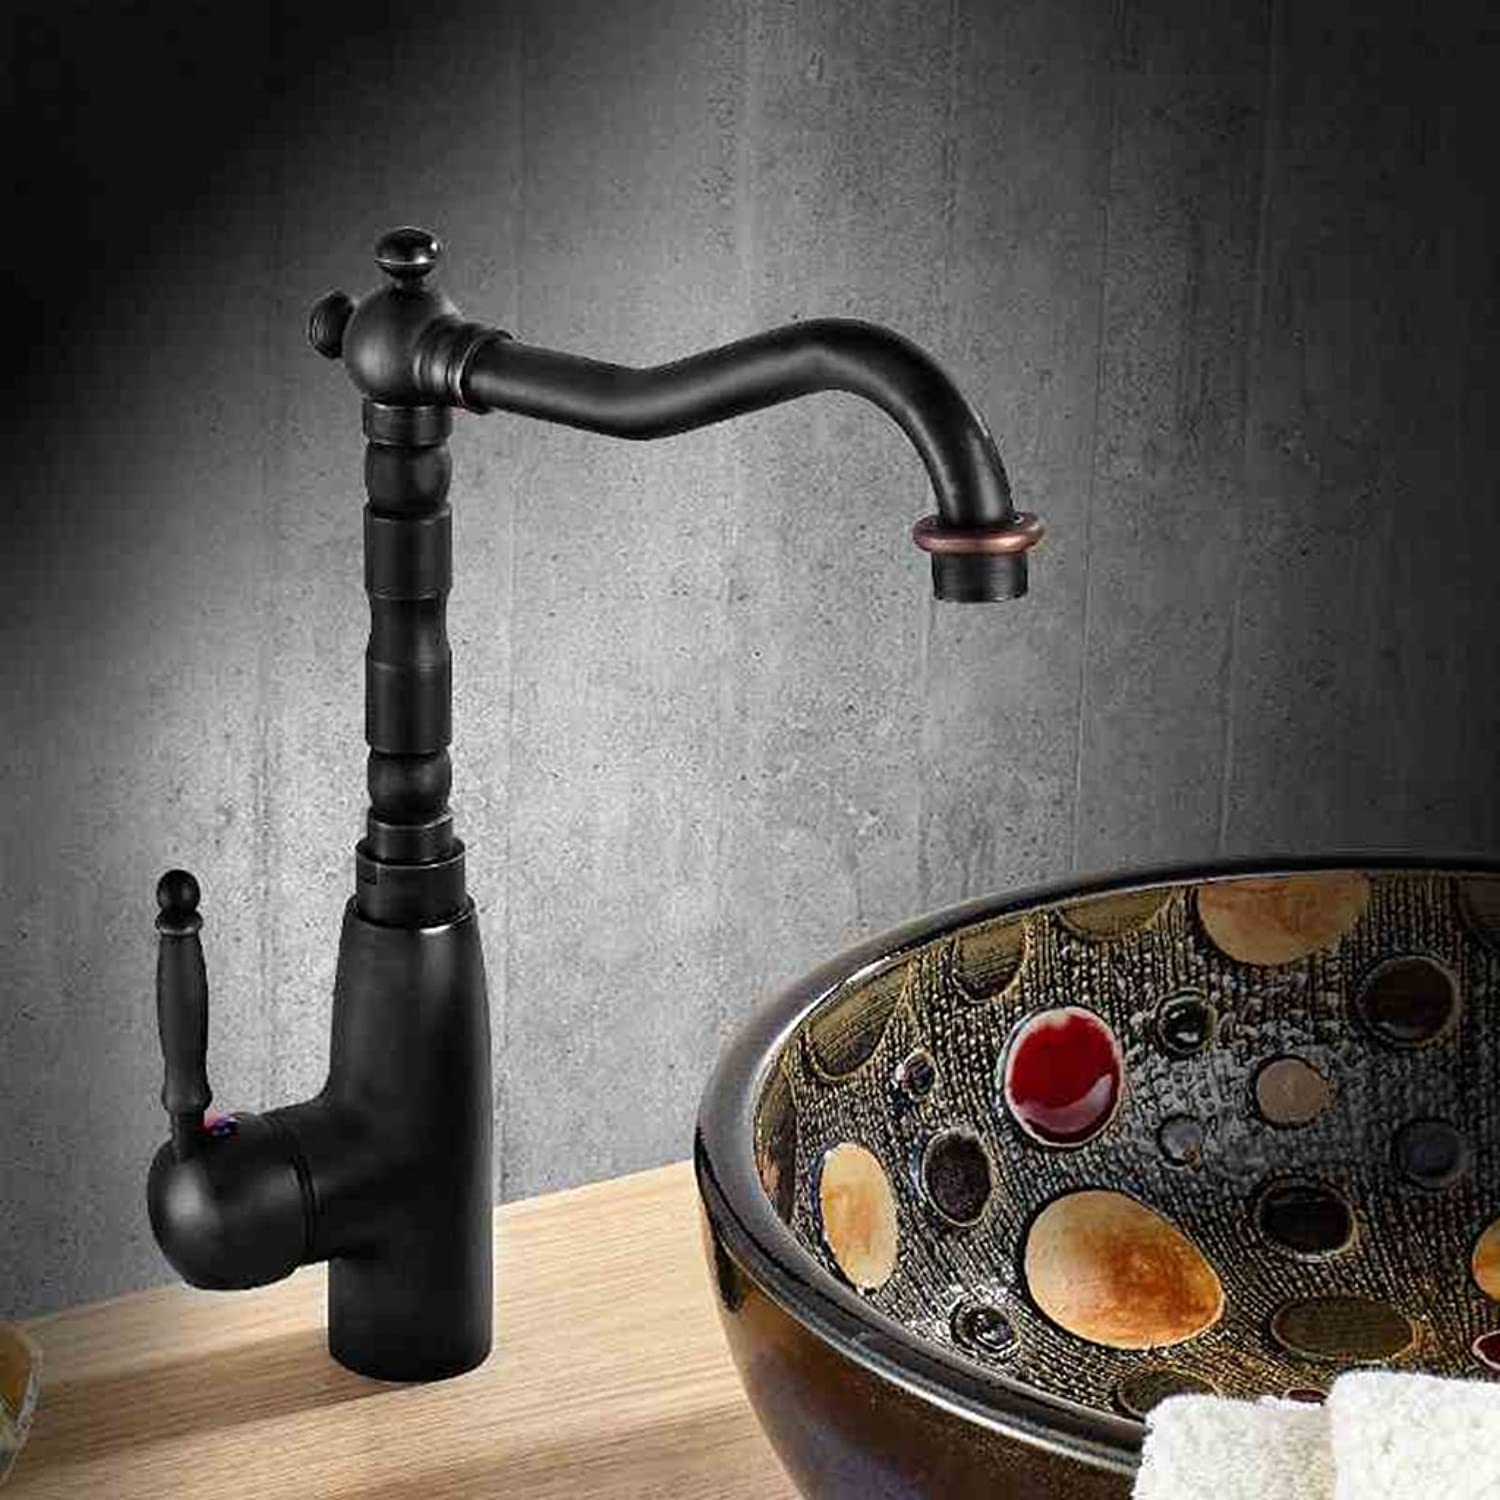 Cqq faucet European style black Antique taps Full copper hot and cold kitchen wash basin wash basin faucet